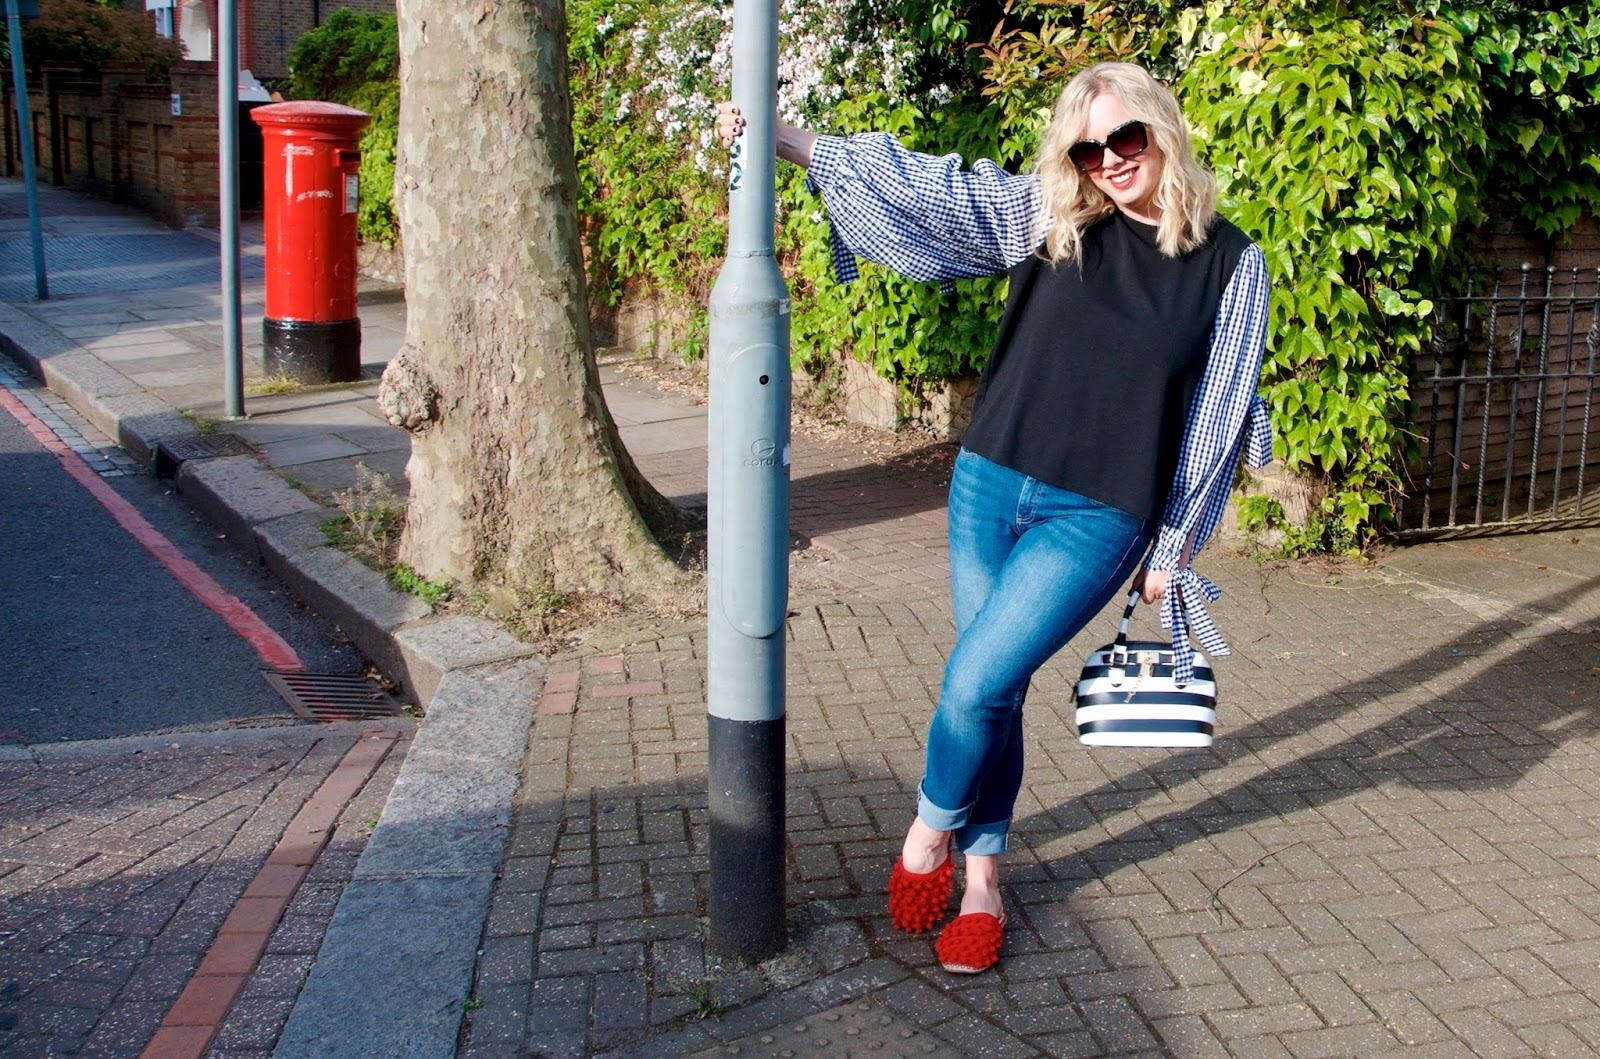 red mailbox and swinging on a lamp post